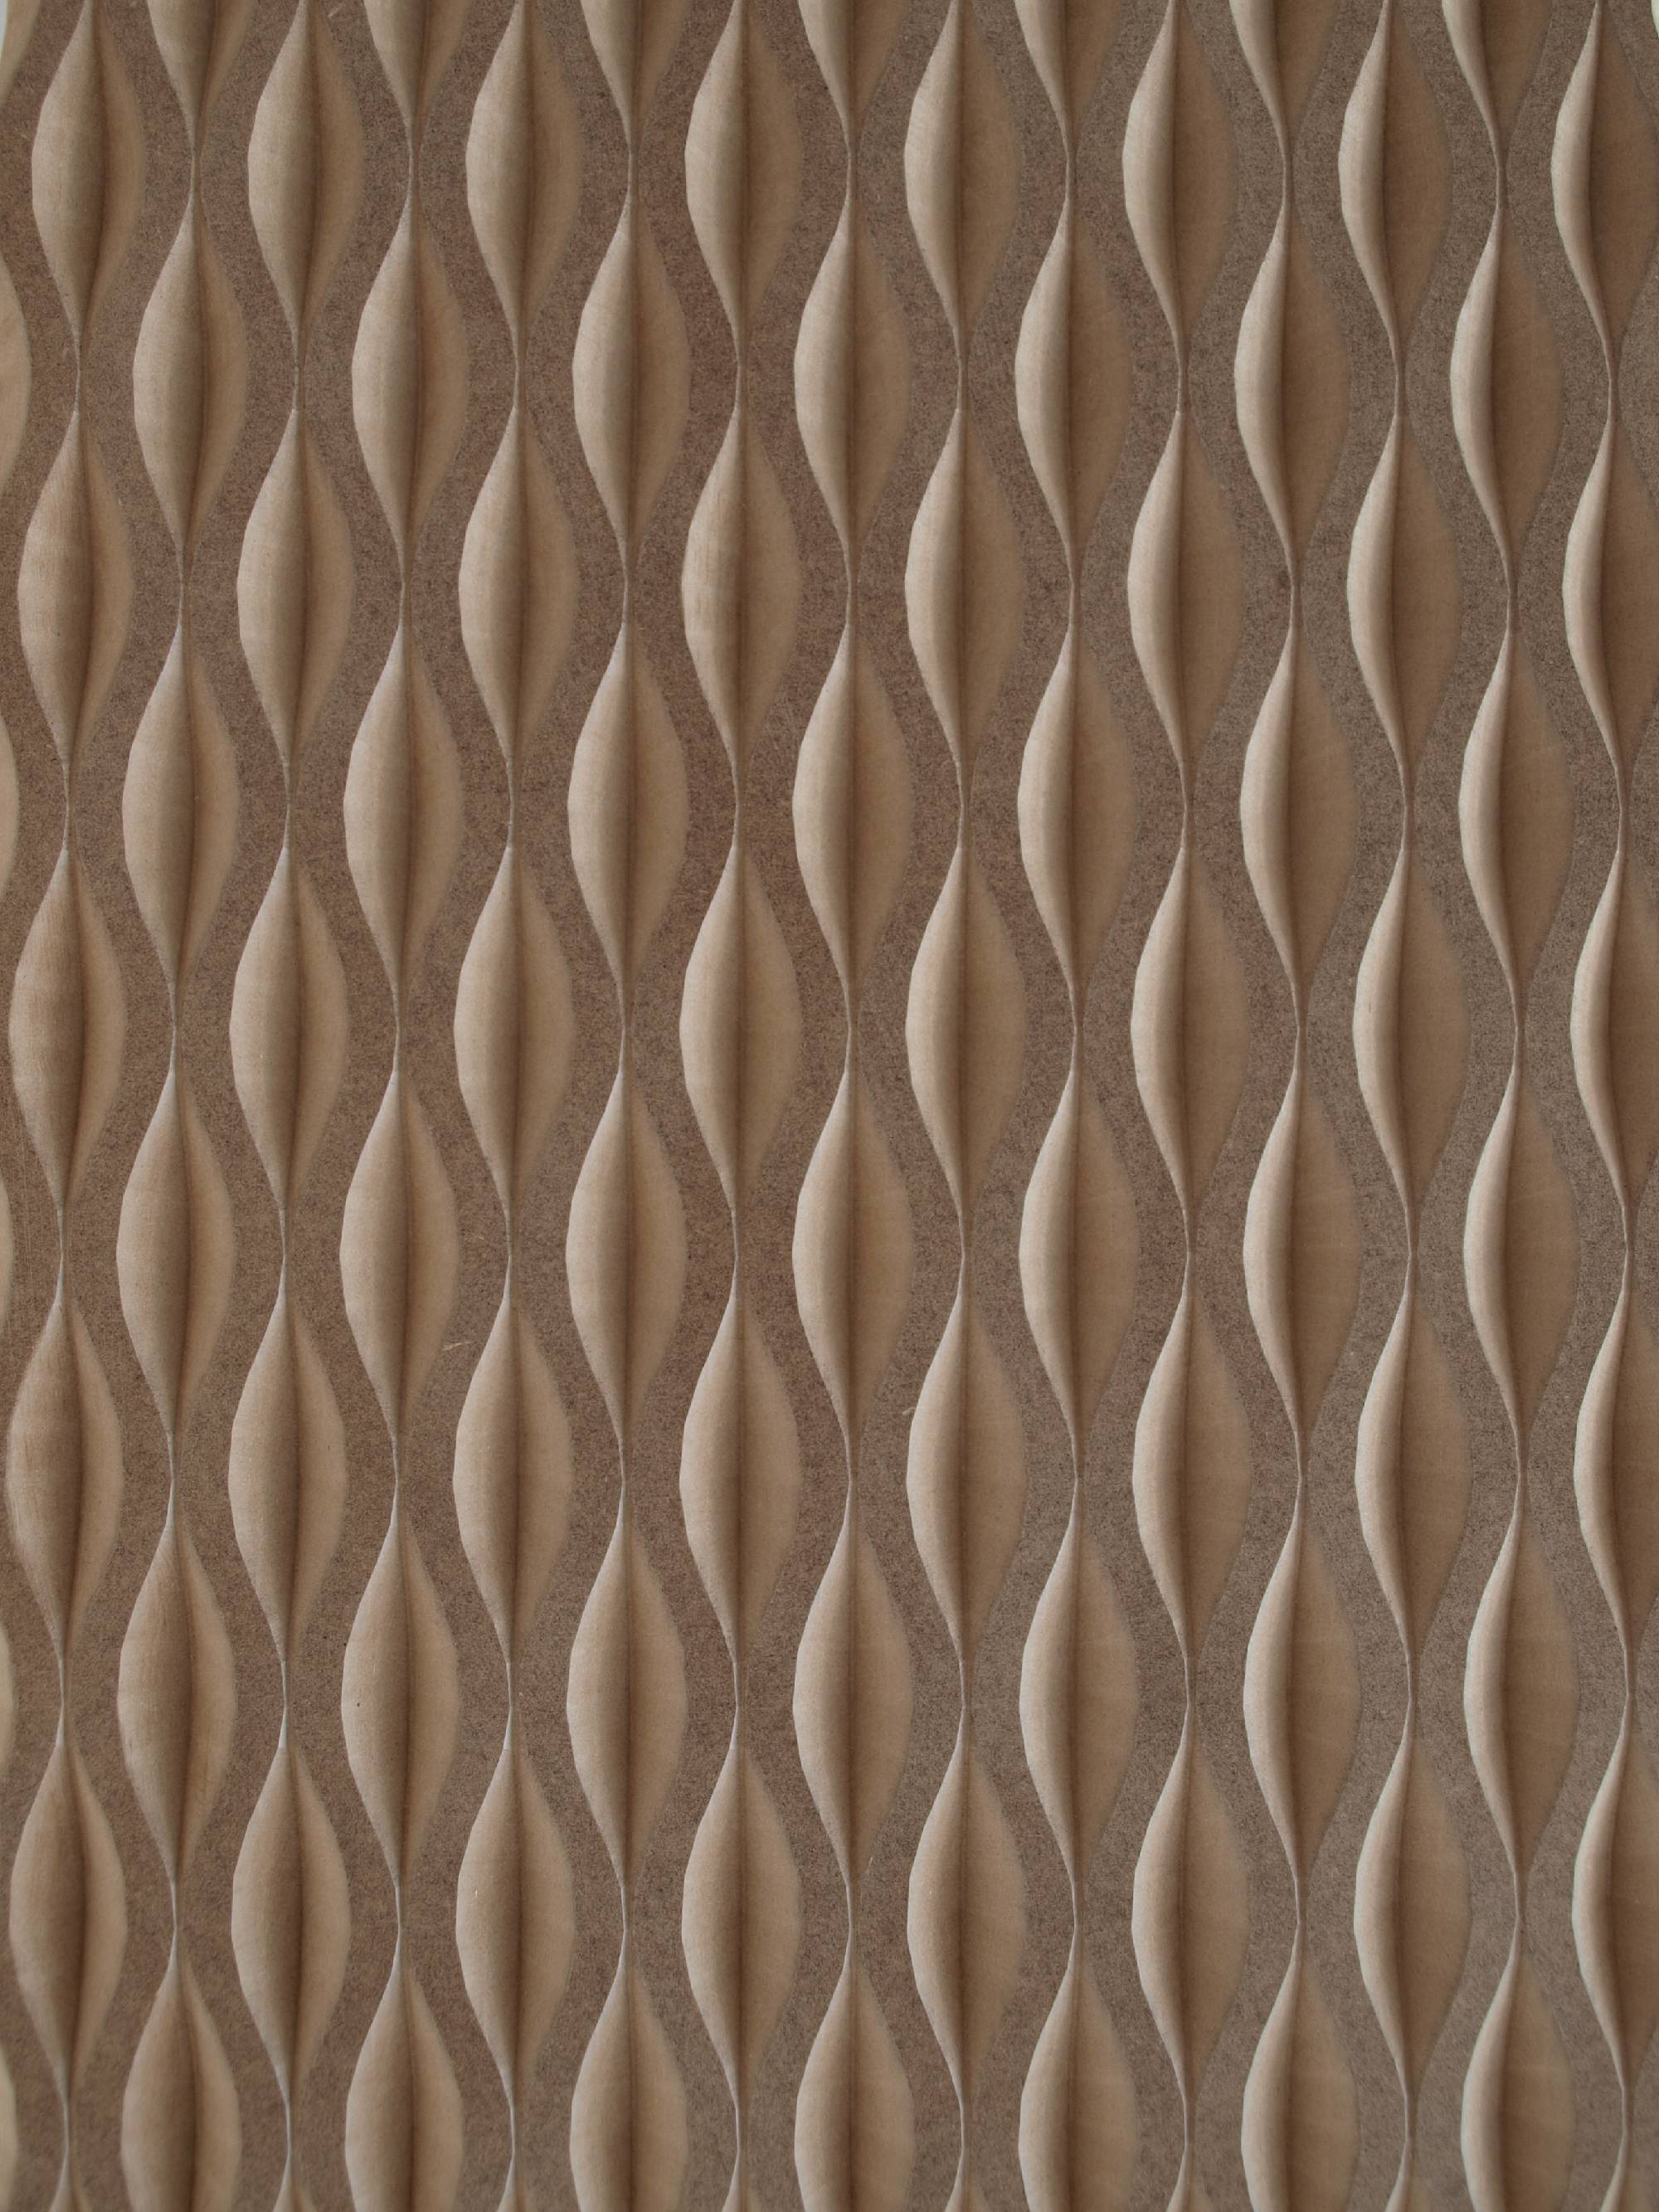 3d Mdf Wall Panels Wainscoting Wall Panels 3d Mdf Mirror